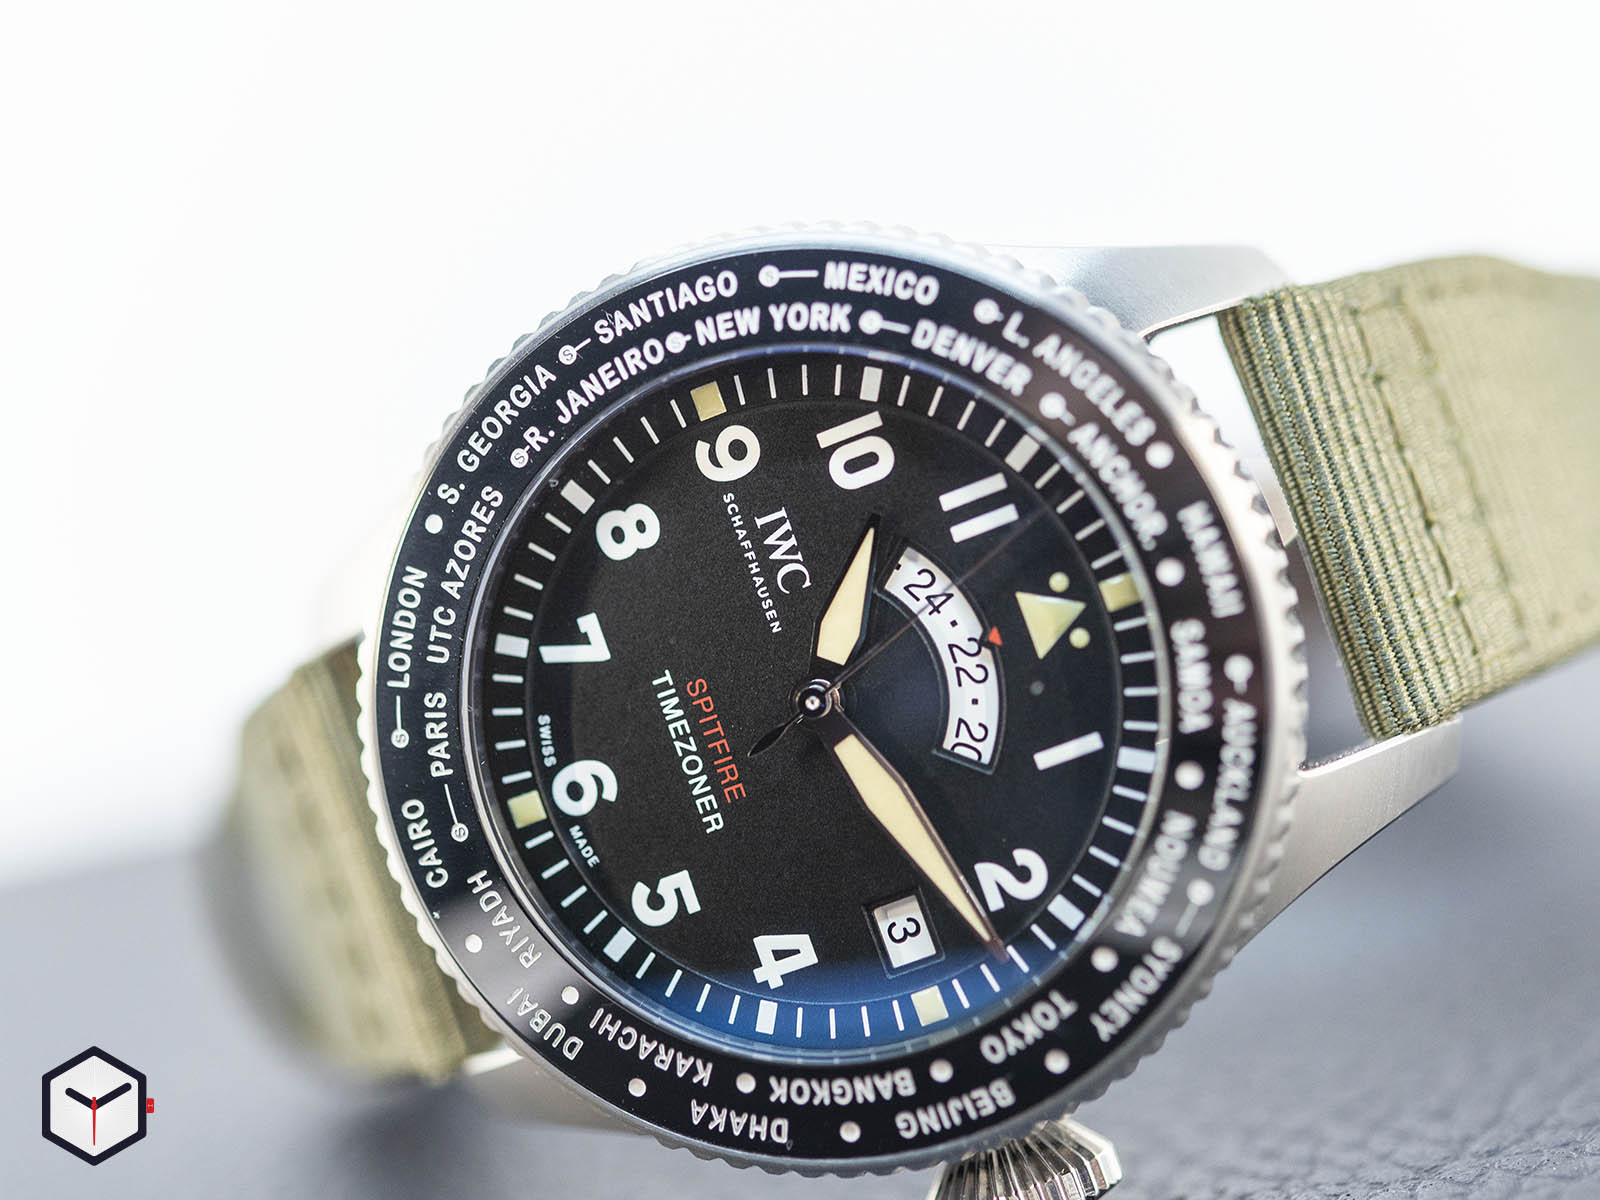 iw395501-iwc-pilot-s-watch-timezoner-spitfire-edition-the-longest-flight-1.jpg